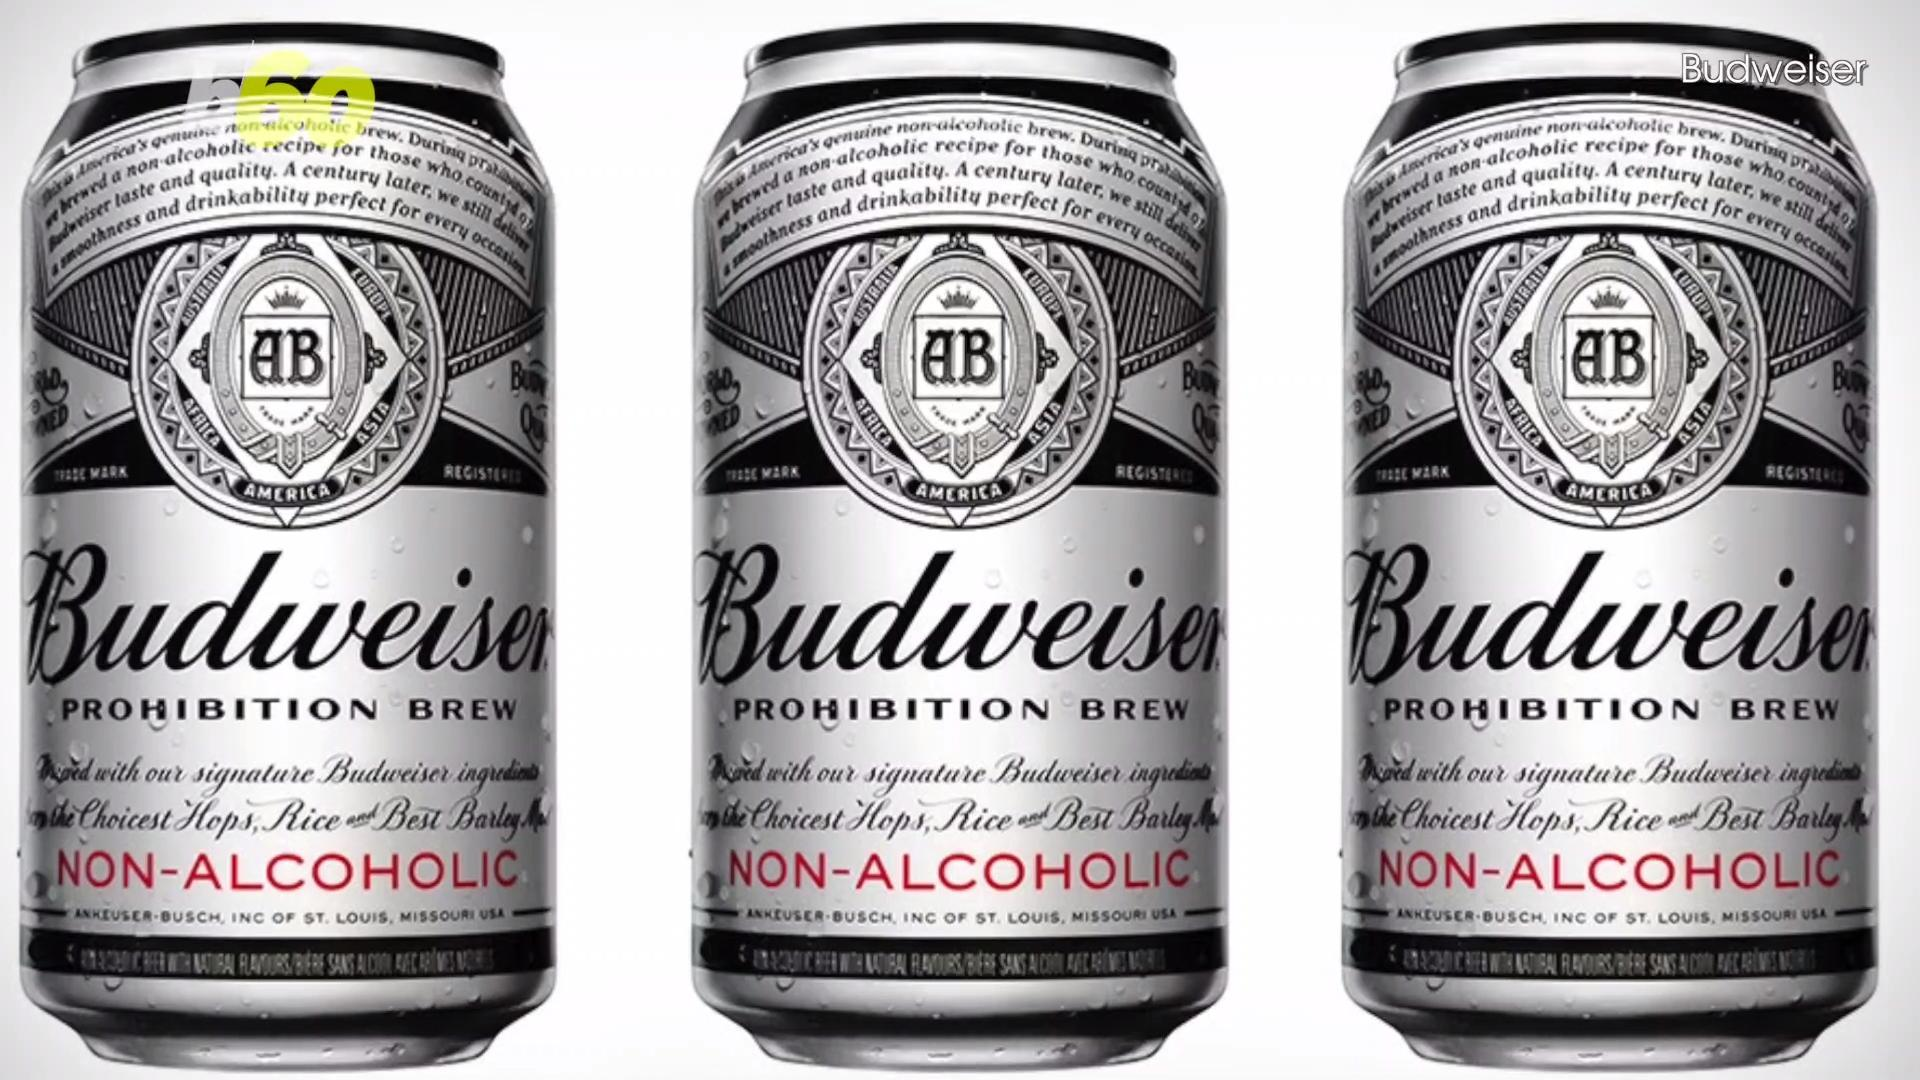 Budweiser's Expanding Its Non-Alcoholic Beer Business